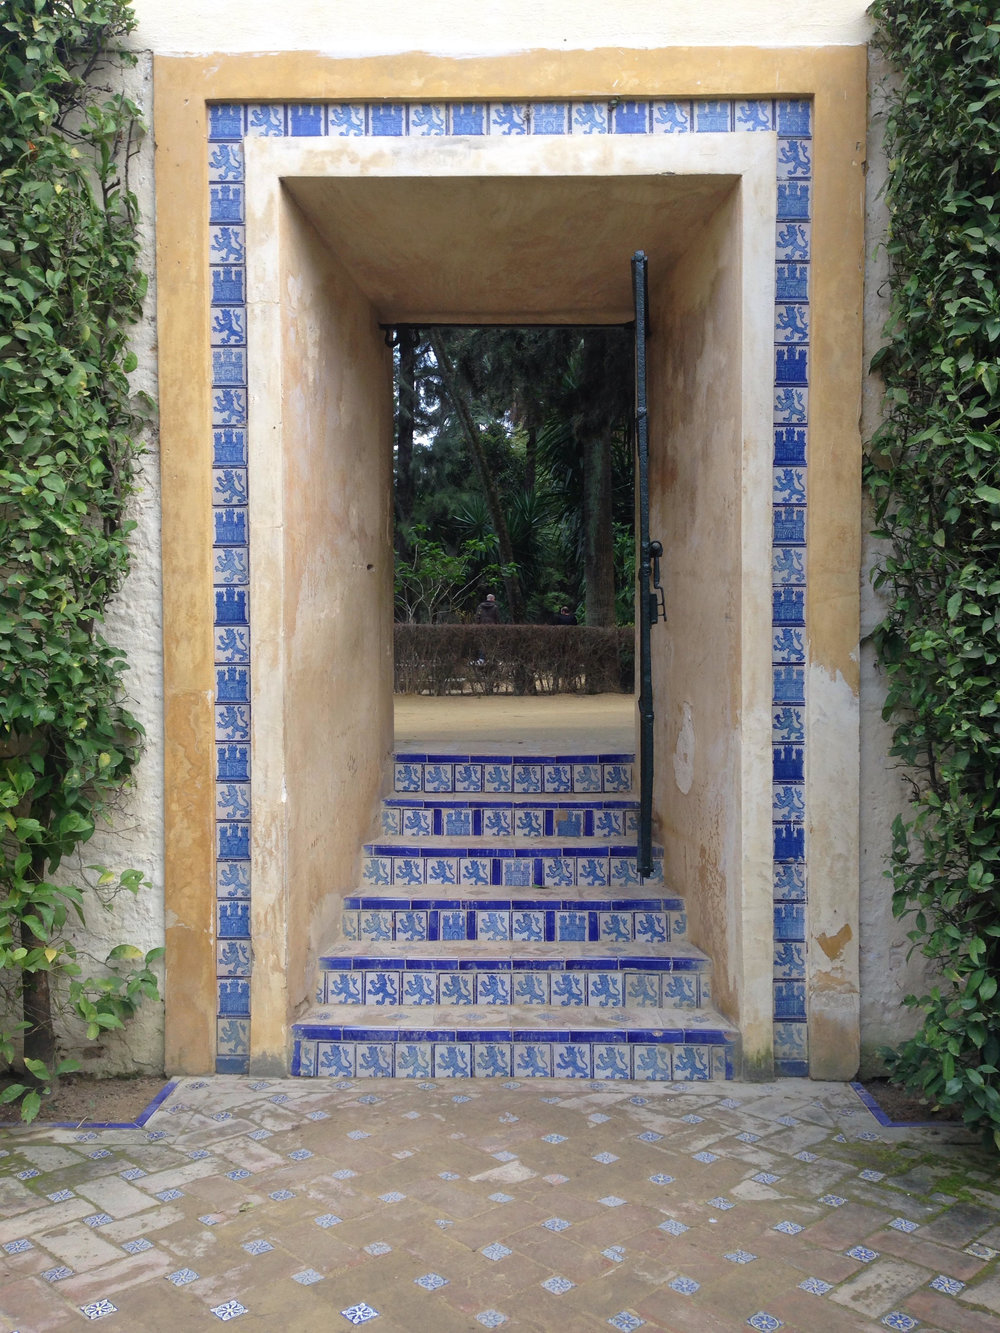 Beautiful doorway in Sevilla's famous Alcazar gardens.